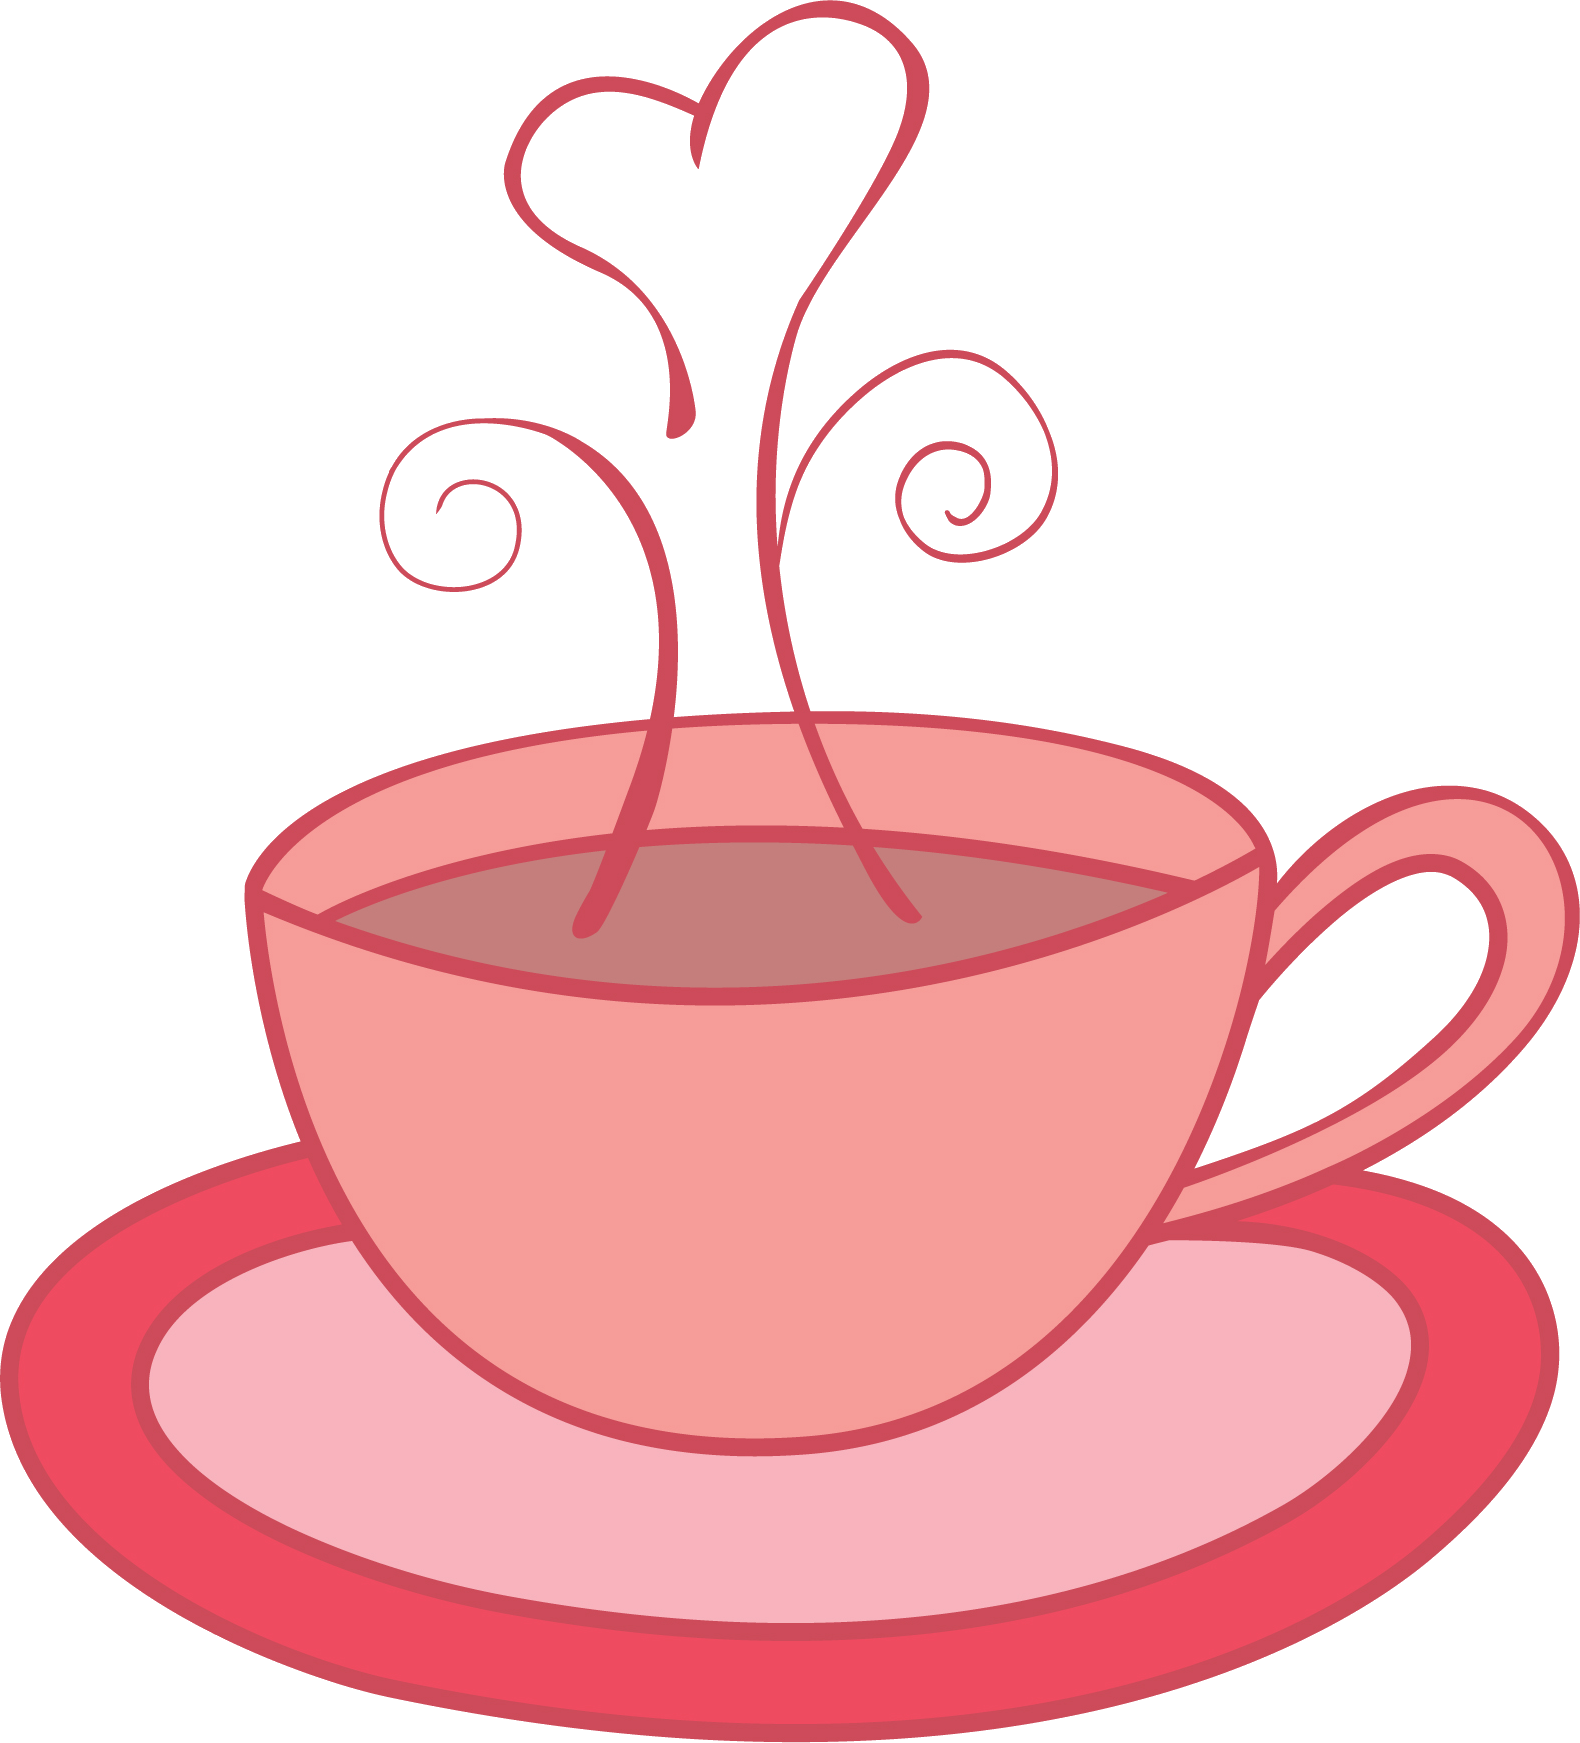 banner free download Free cliparts download clip. Teacup clipart